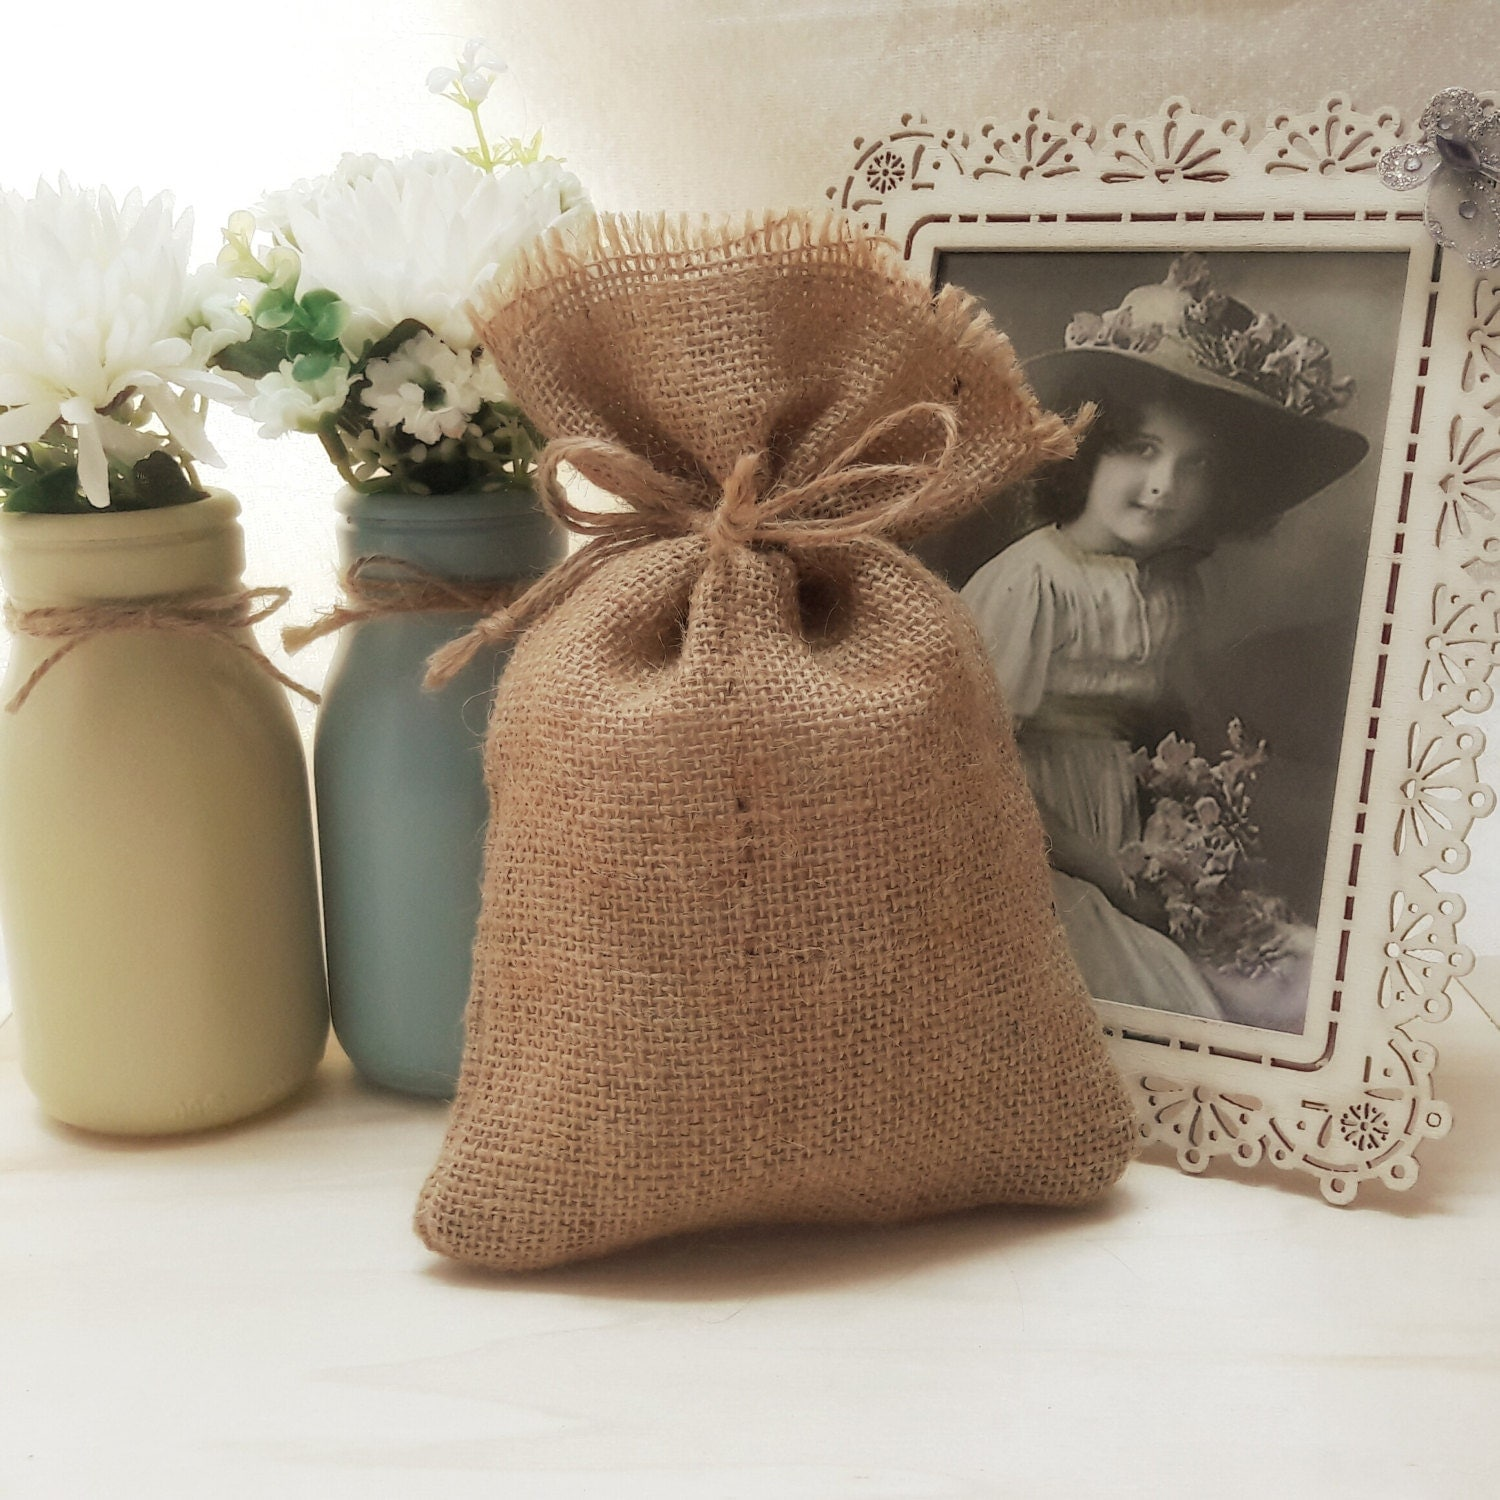 20 rustic burlap 4 x 6 wedding favor bag drawstring pouch for Wedding favor gift bags